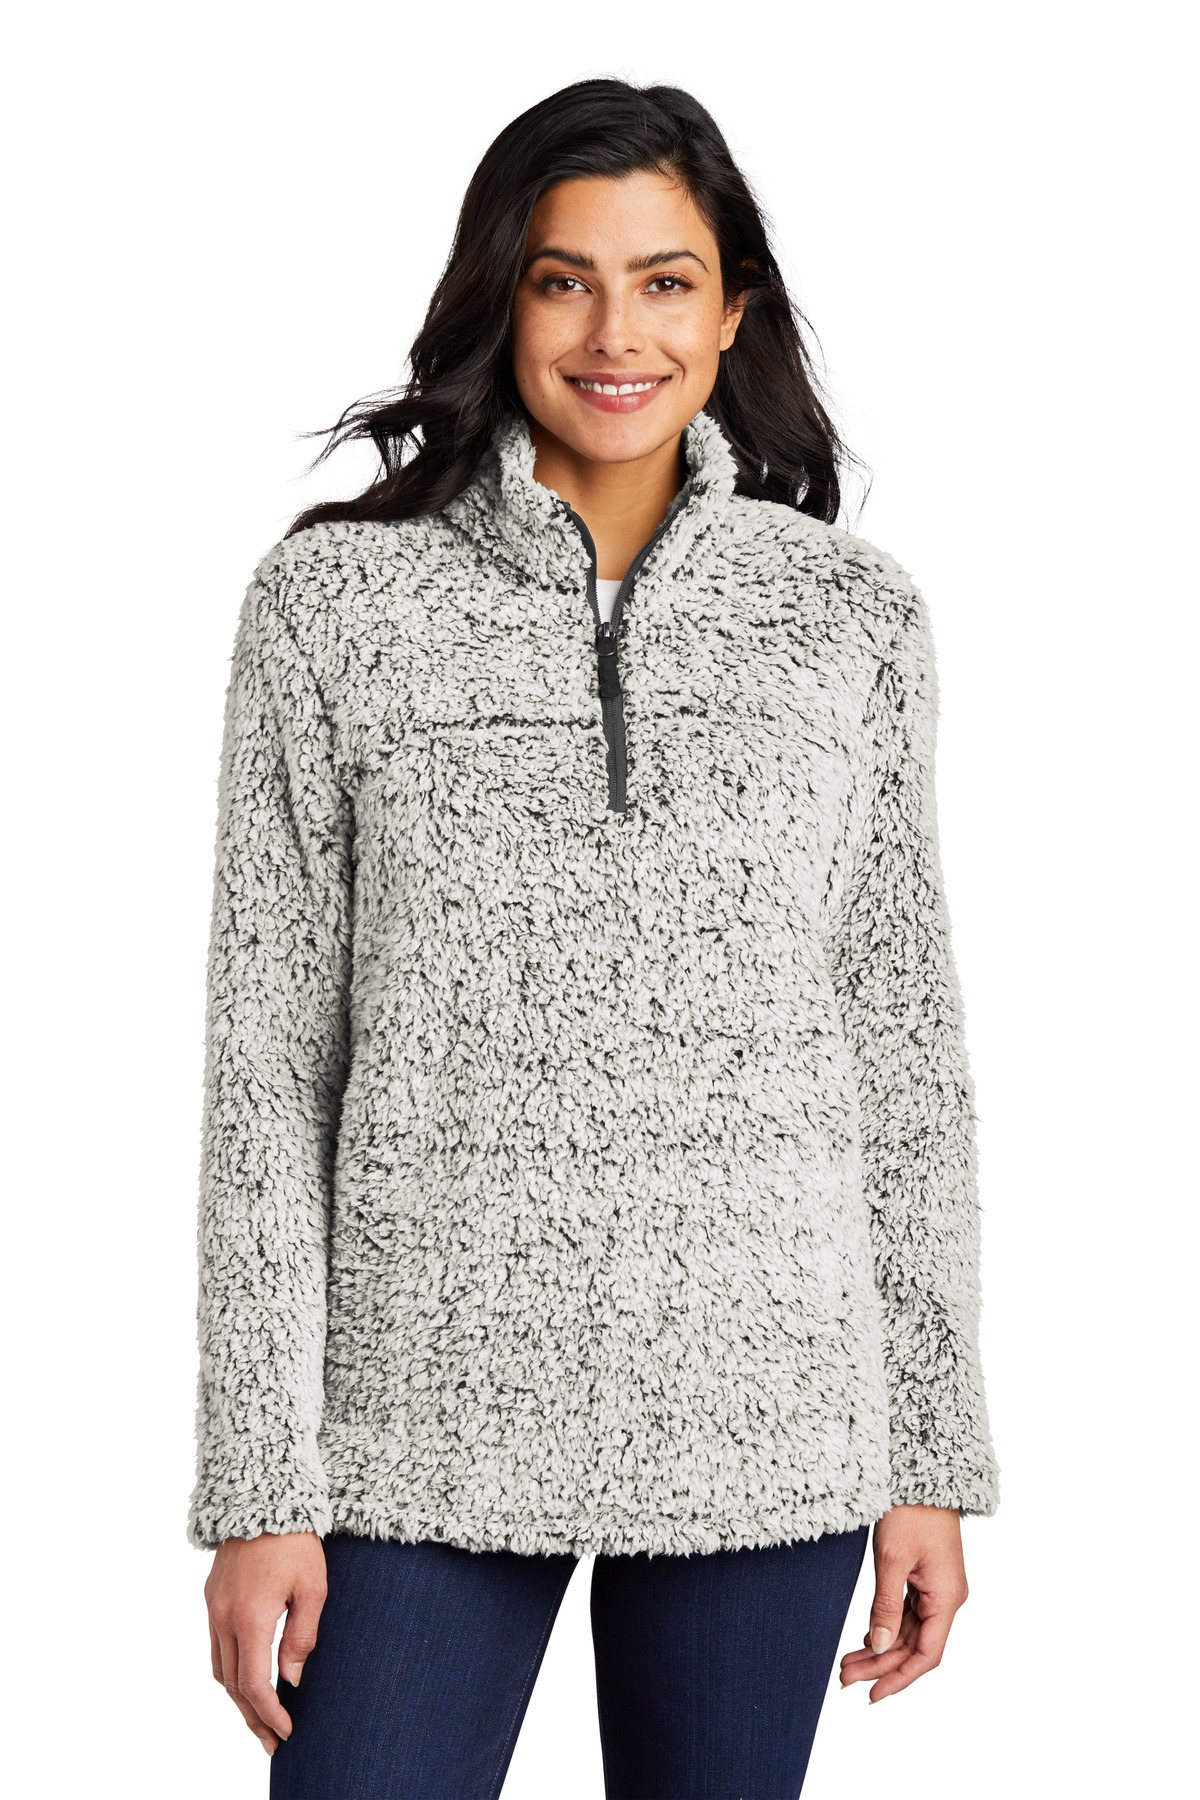 Port Authority  ®   Ladies Cozy 1/4-Zip Fleece L130 - Grey Heather